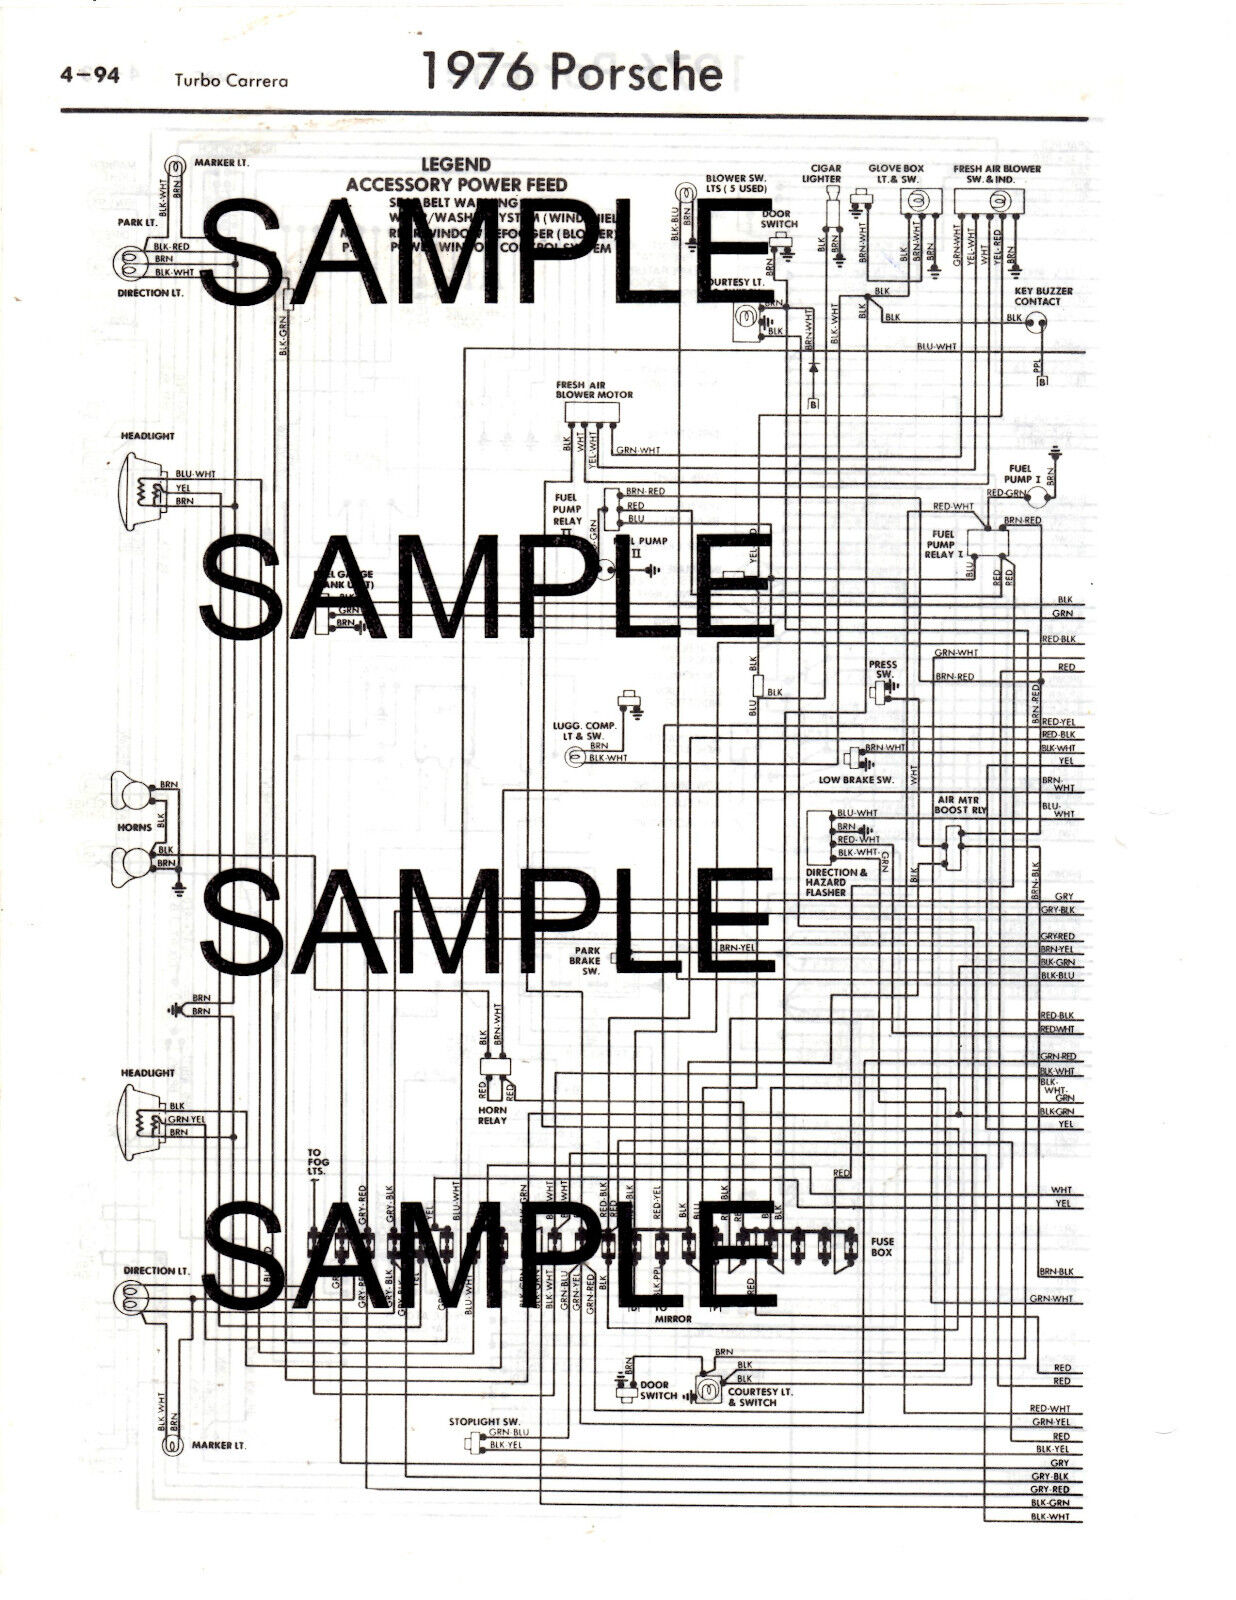 Magnificent Fiat Doblo Wiring Diagram Collection - Electrical and ...